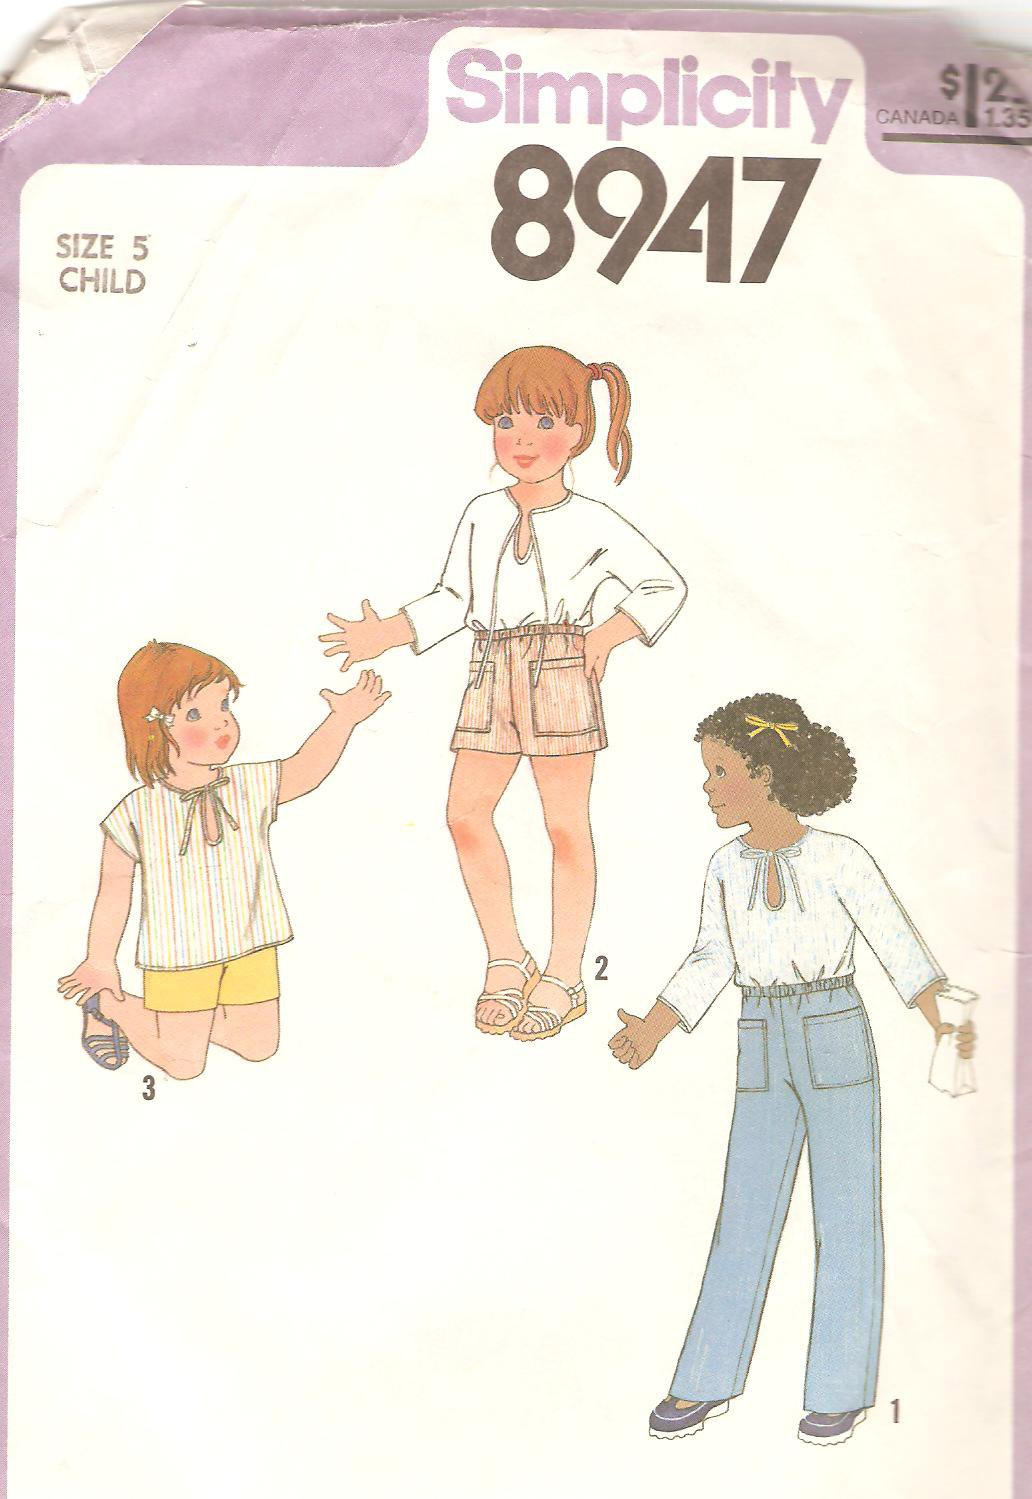 Simplicity 8947 (1979) Childs Pullover Top Neck Tie Shorts Pants Pattern Size 5 Cut